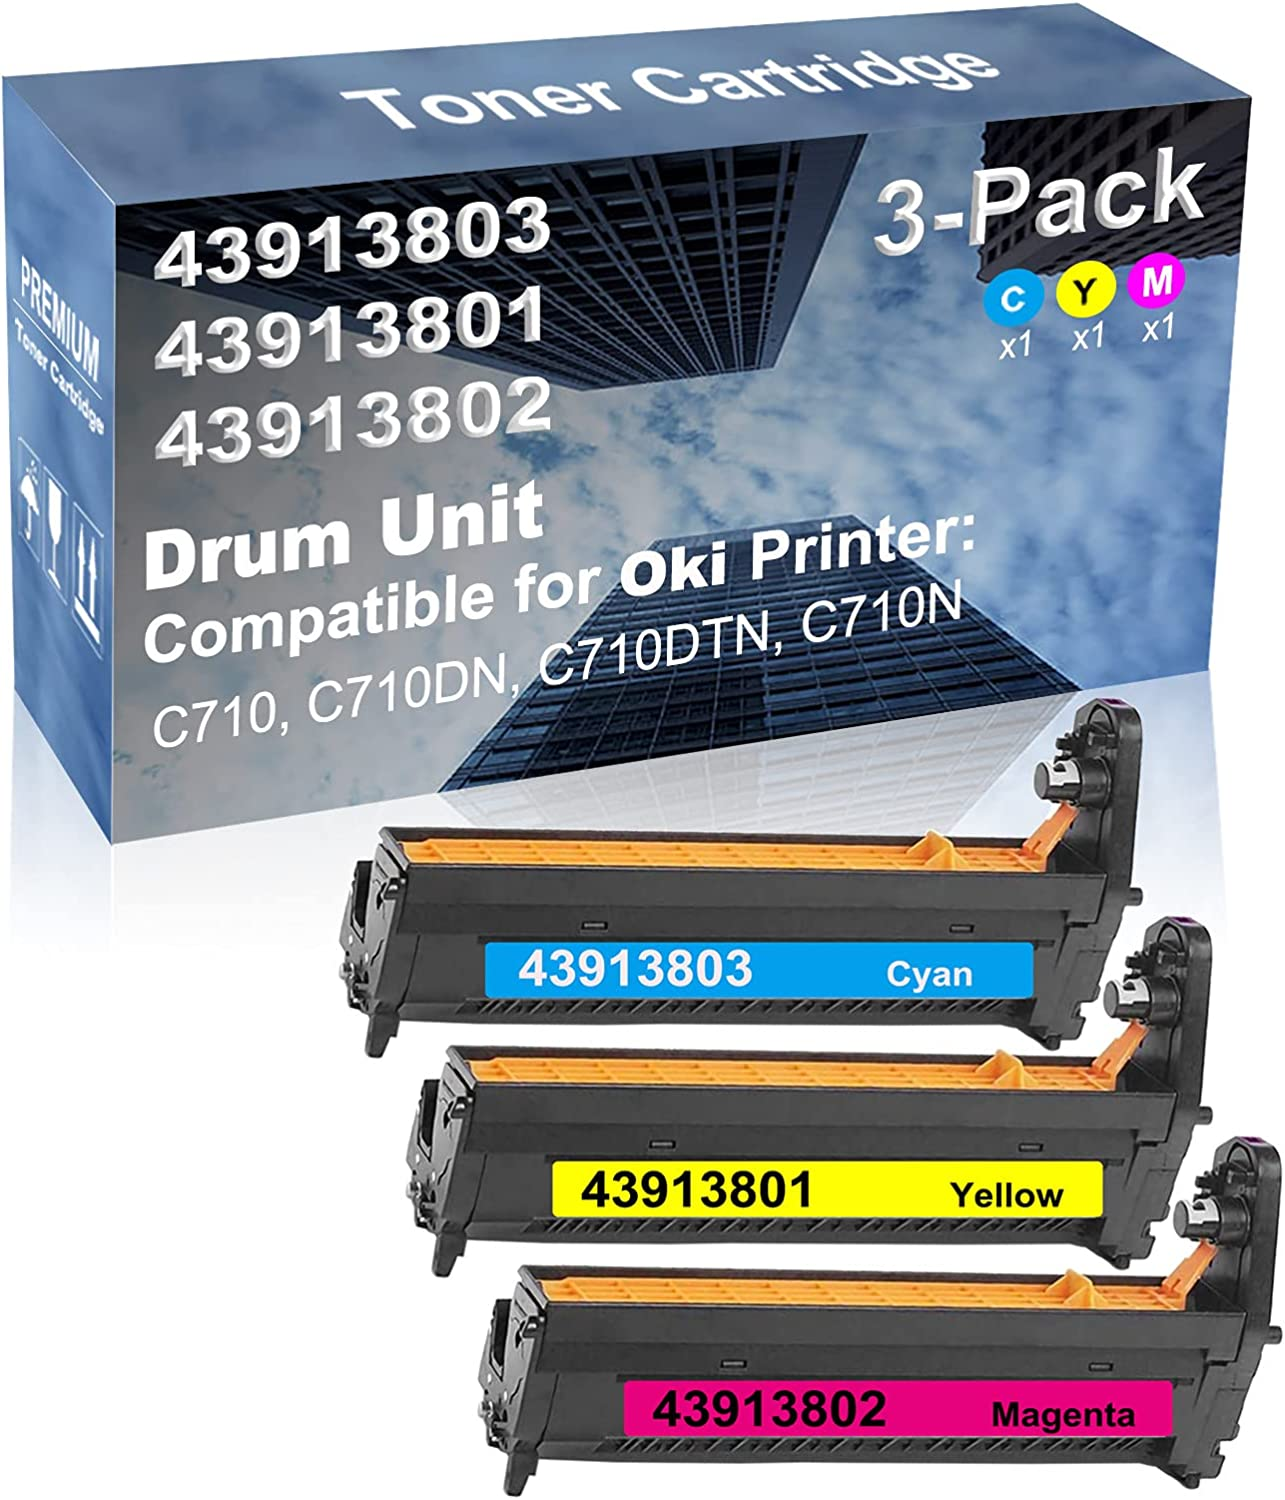 3-Pack (C+Y+M) Compatible C710, C710DN, C710DTN, C710N Printer Drum Kit High Capacity Replacement for Oki 43913803+ 43913801+ 43913802 Drum Unit